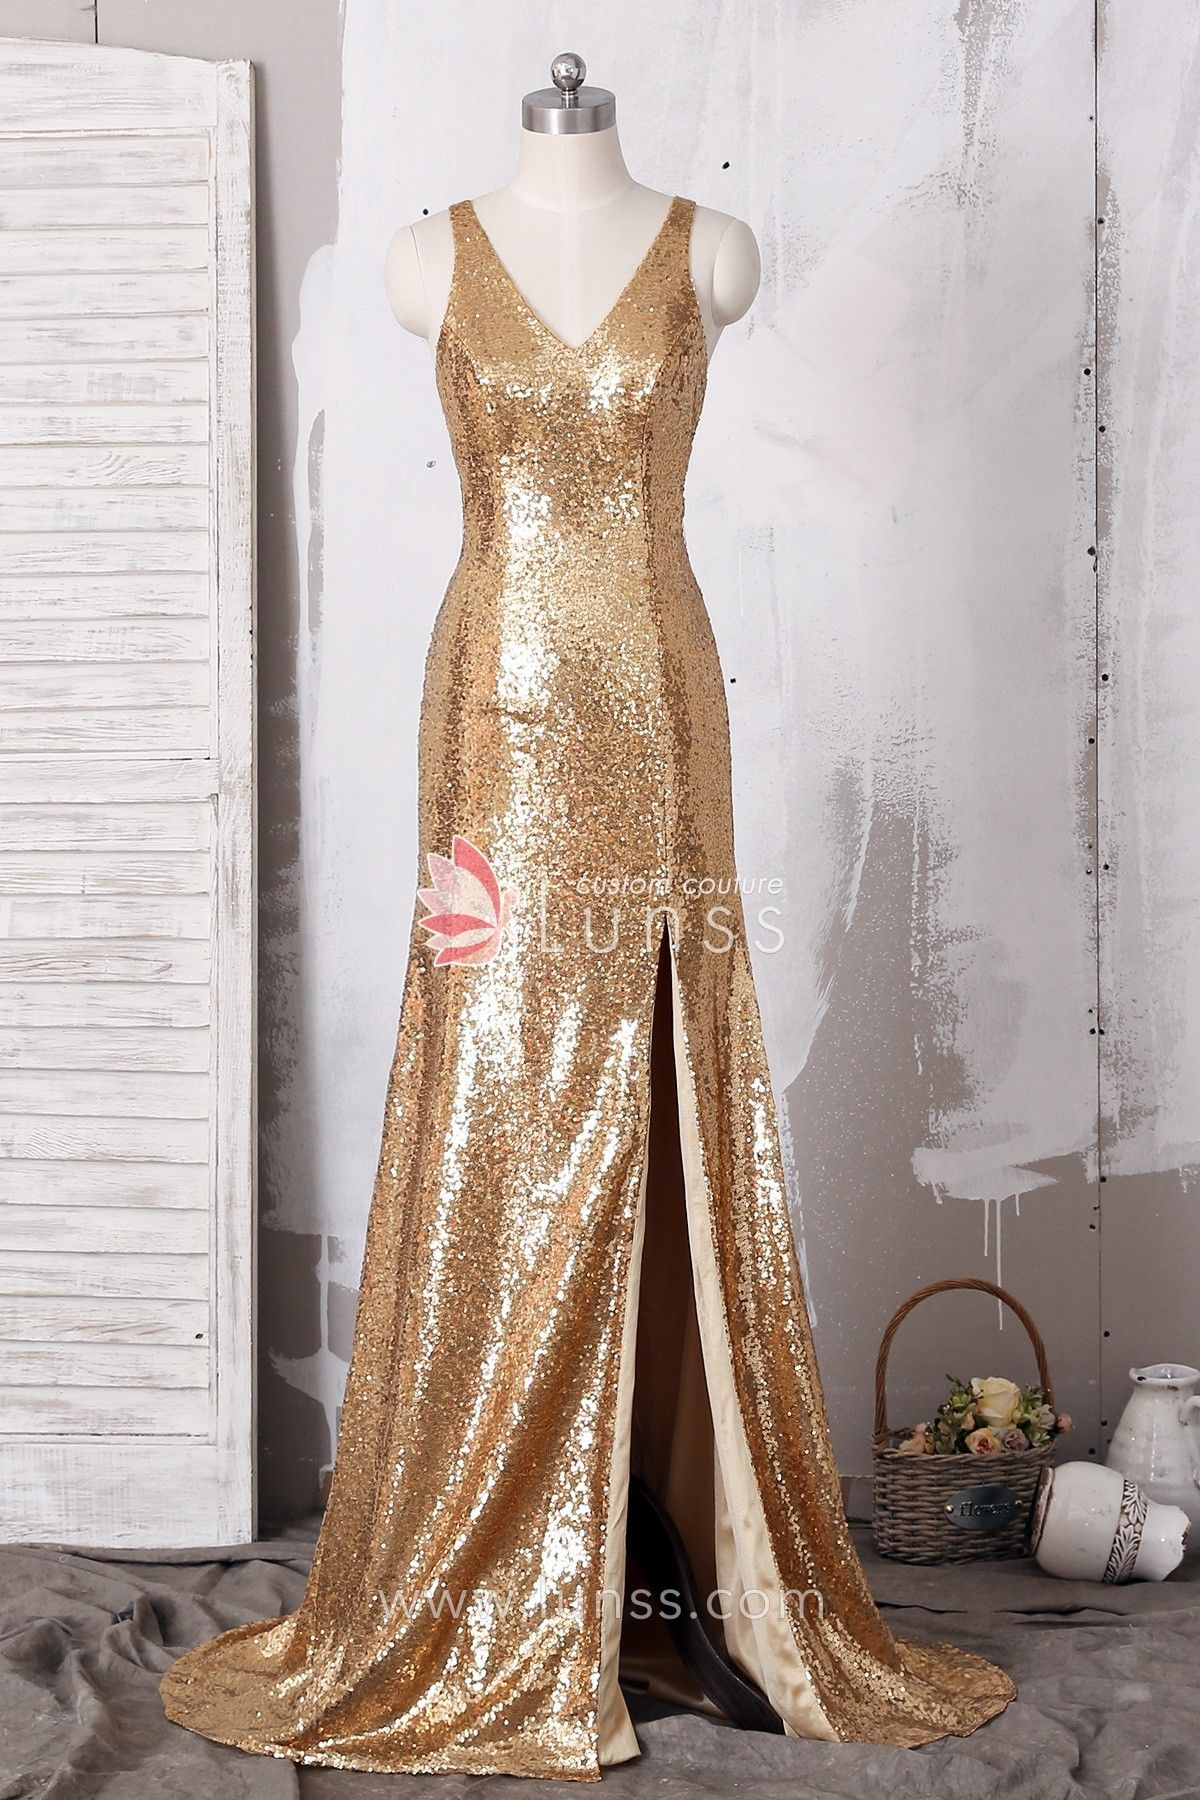 Elegant gold fit and flare sparkling sequin long dress with waist